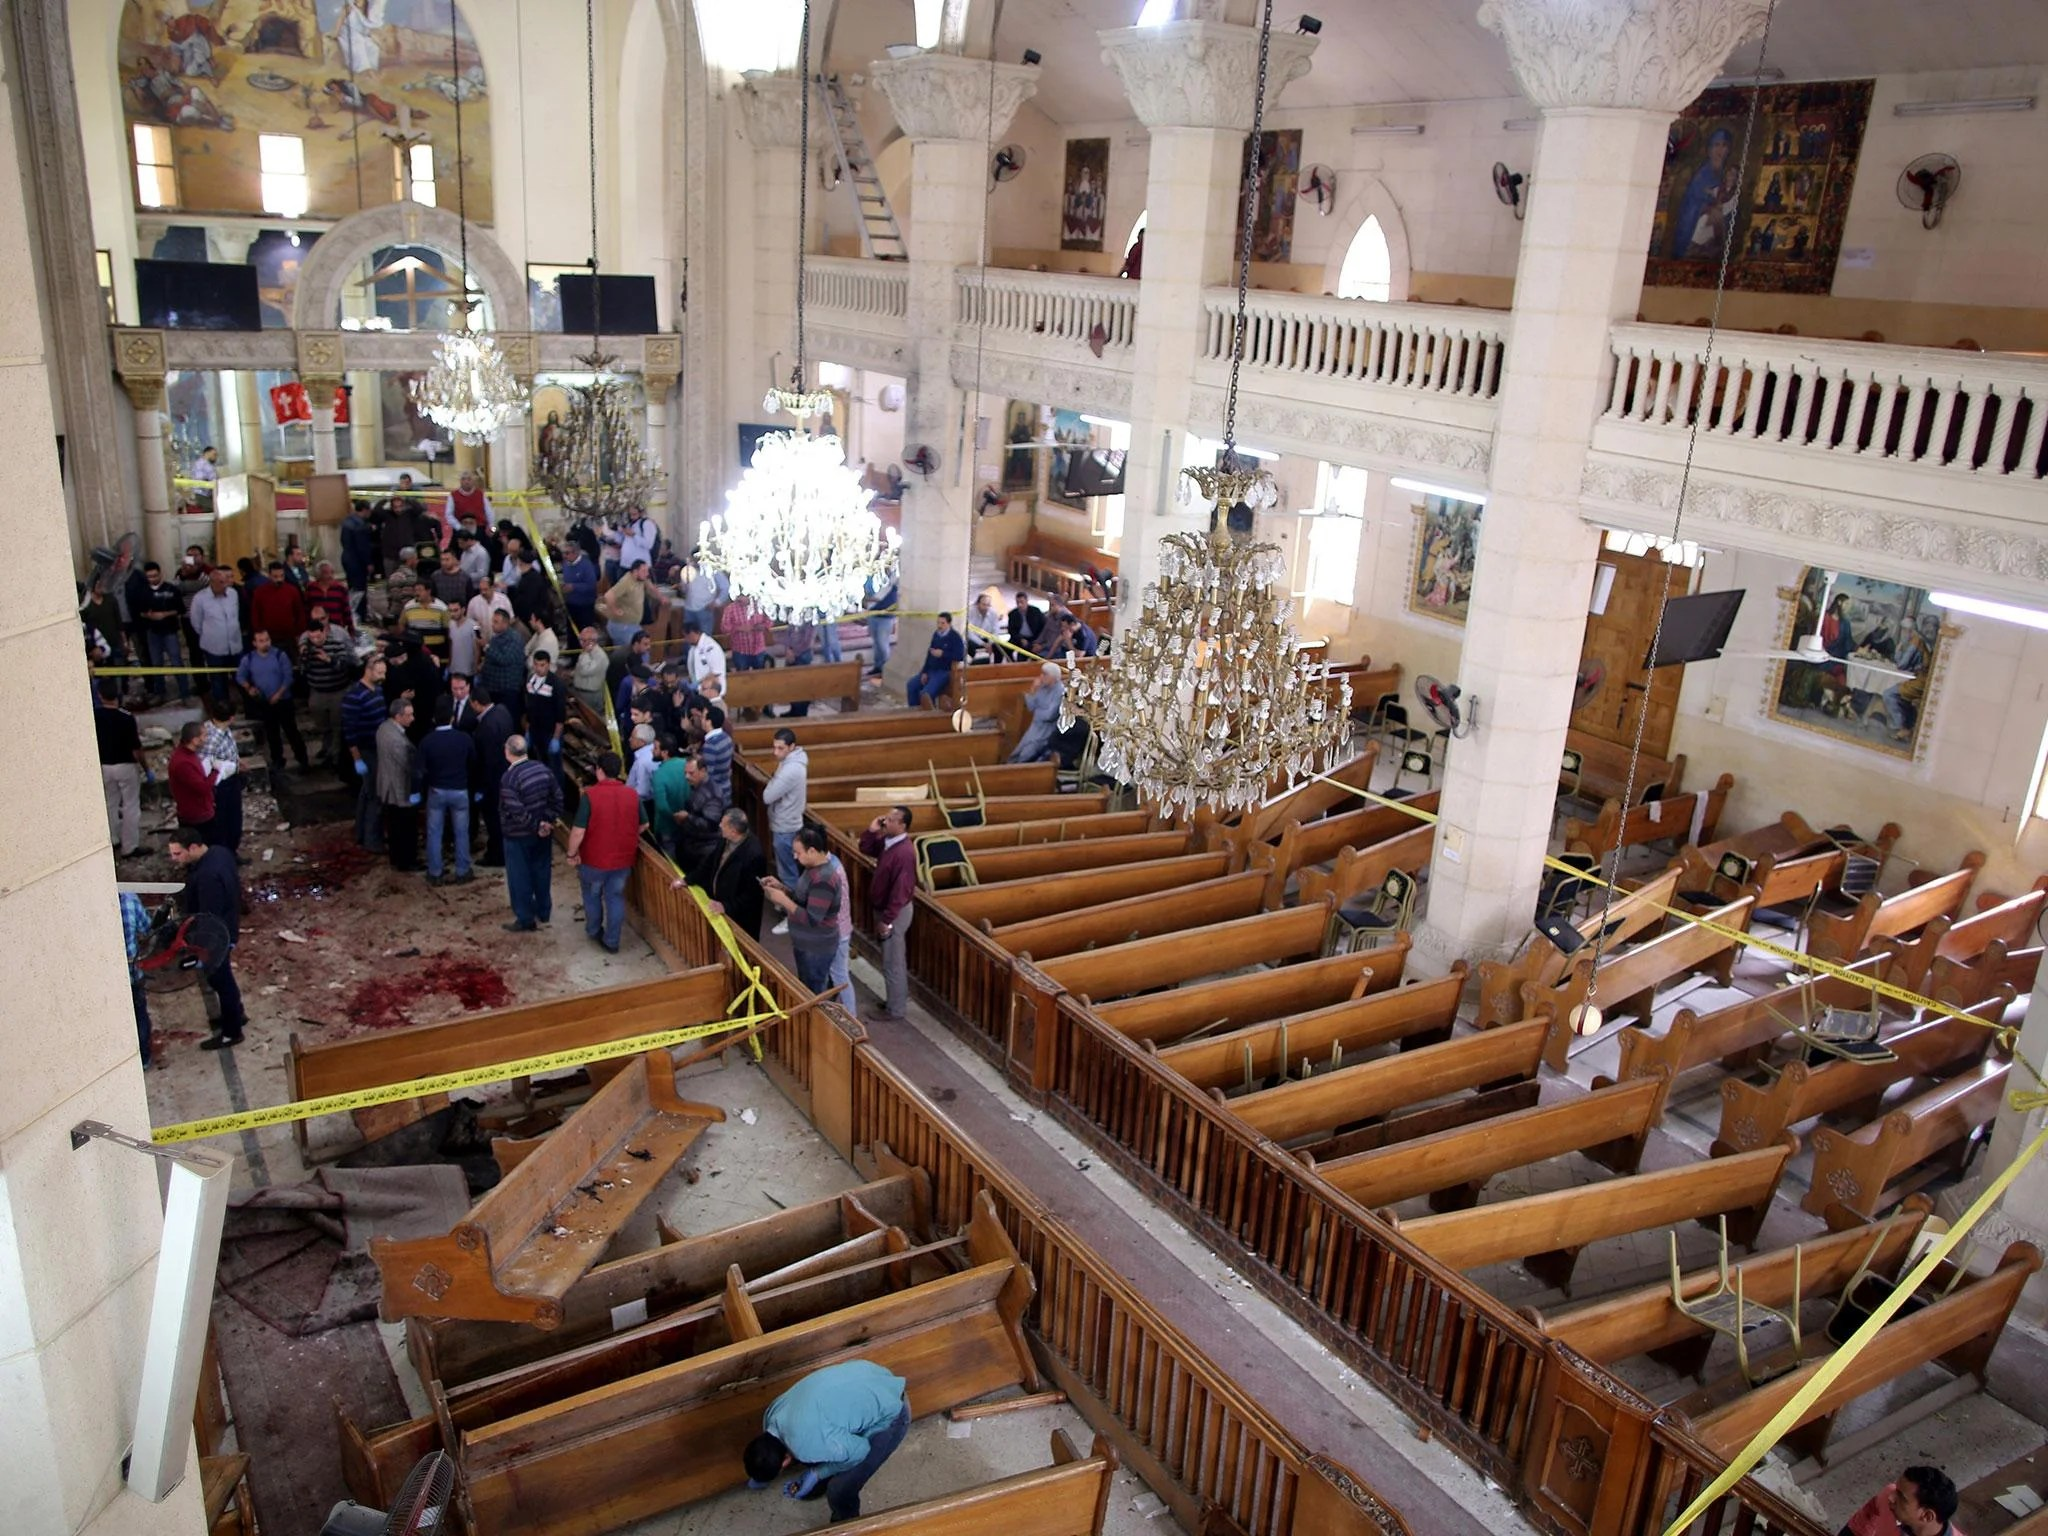 Egypt church bombings: Isis claims responsibilty for two